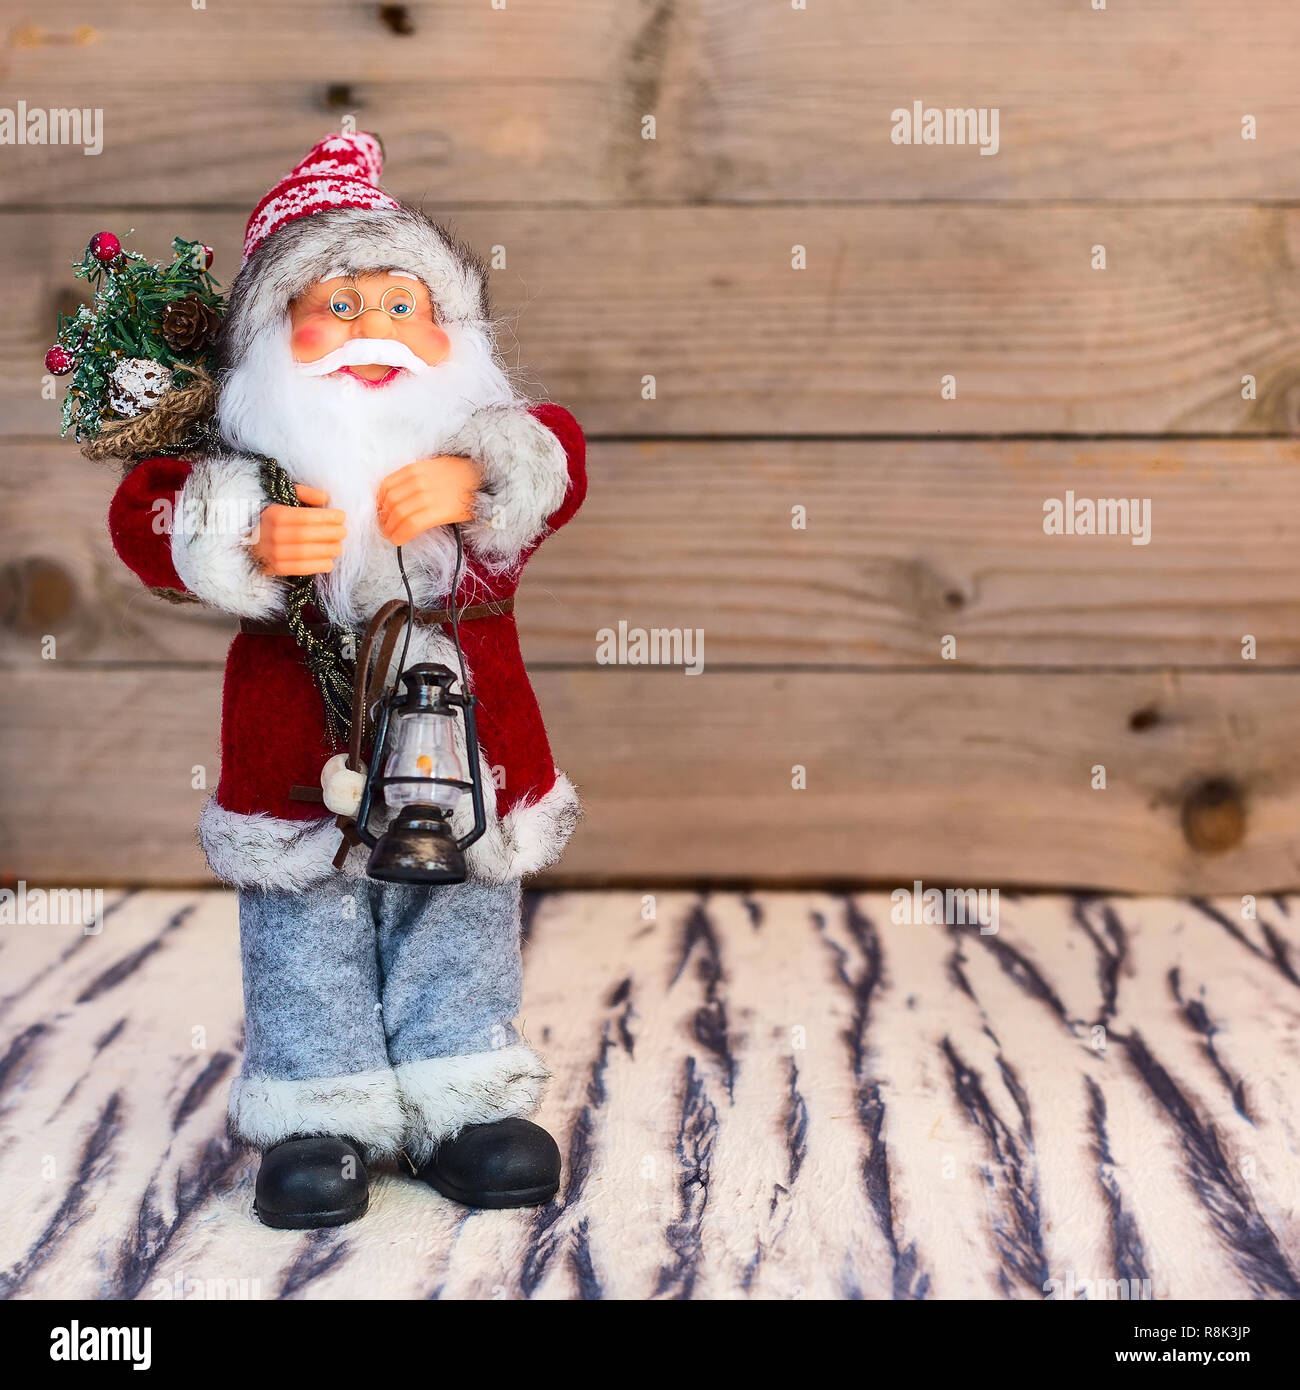 75b344db43055 Christmas or New Year Santa Claus postcard background with copy space